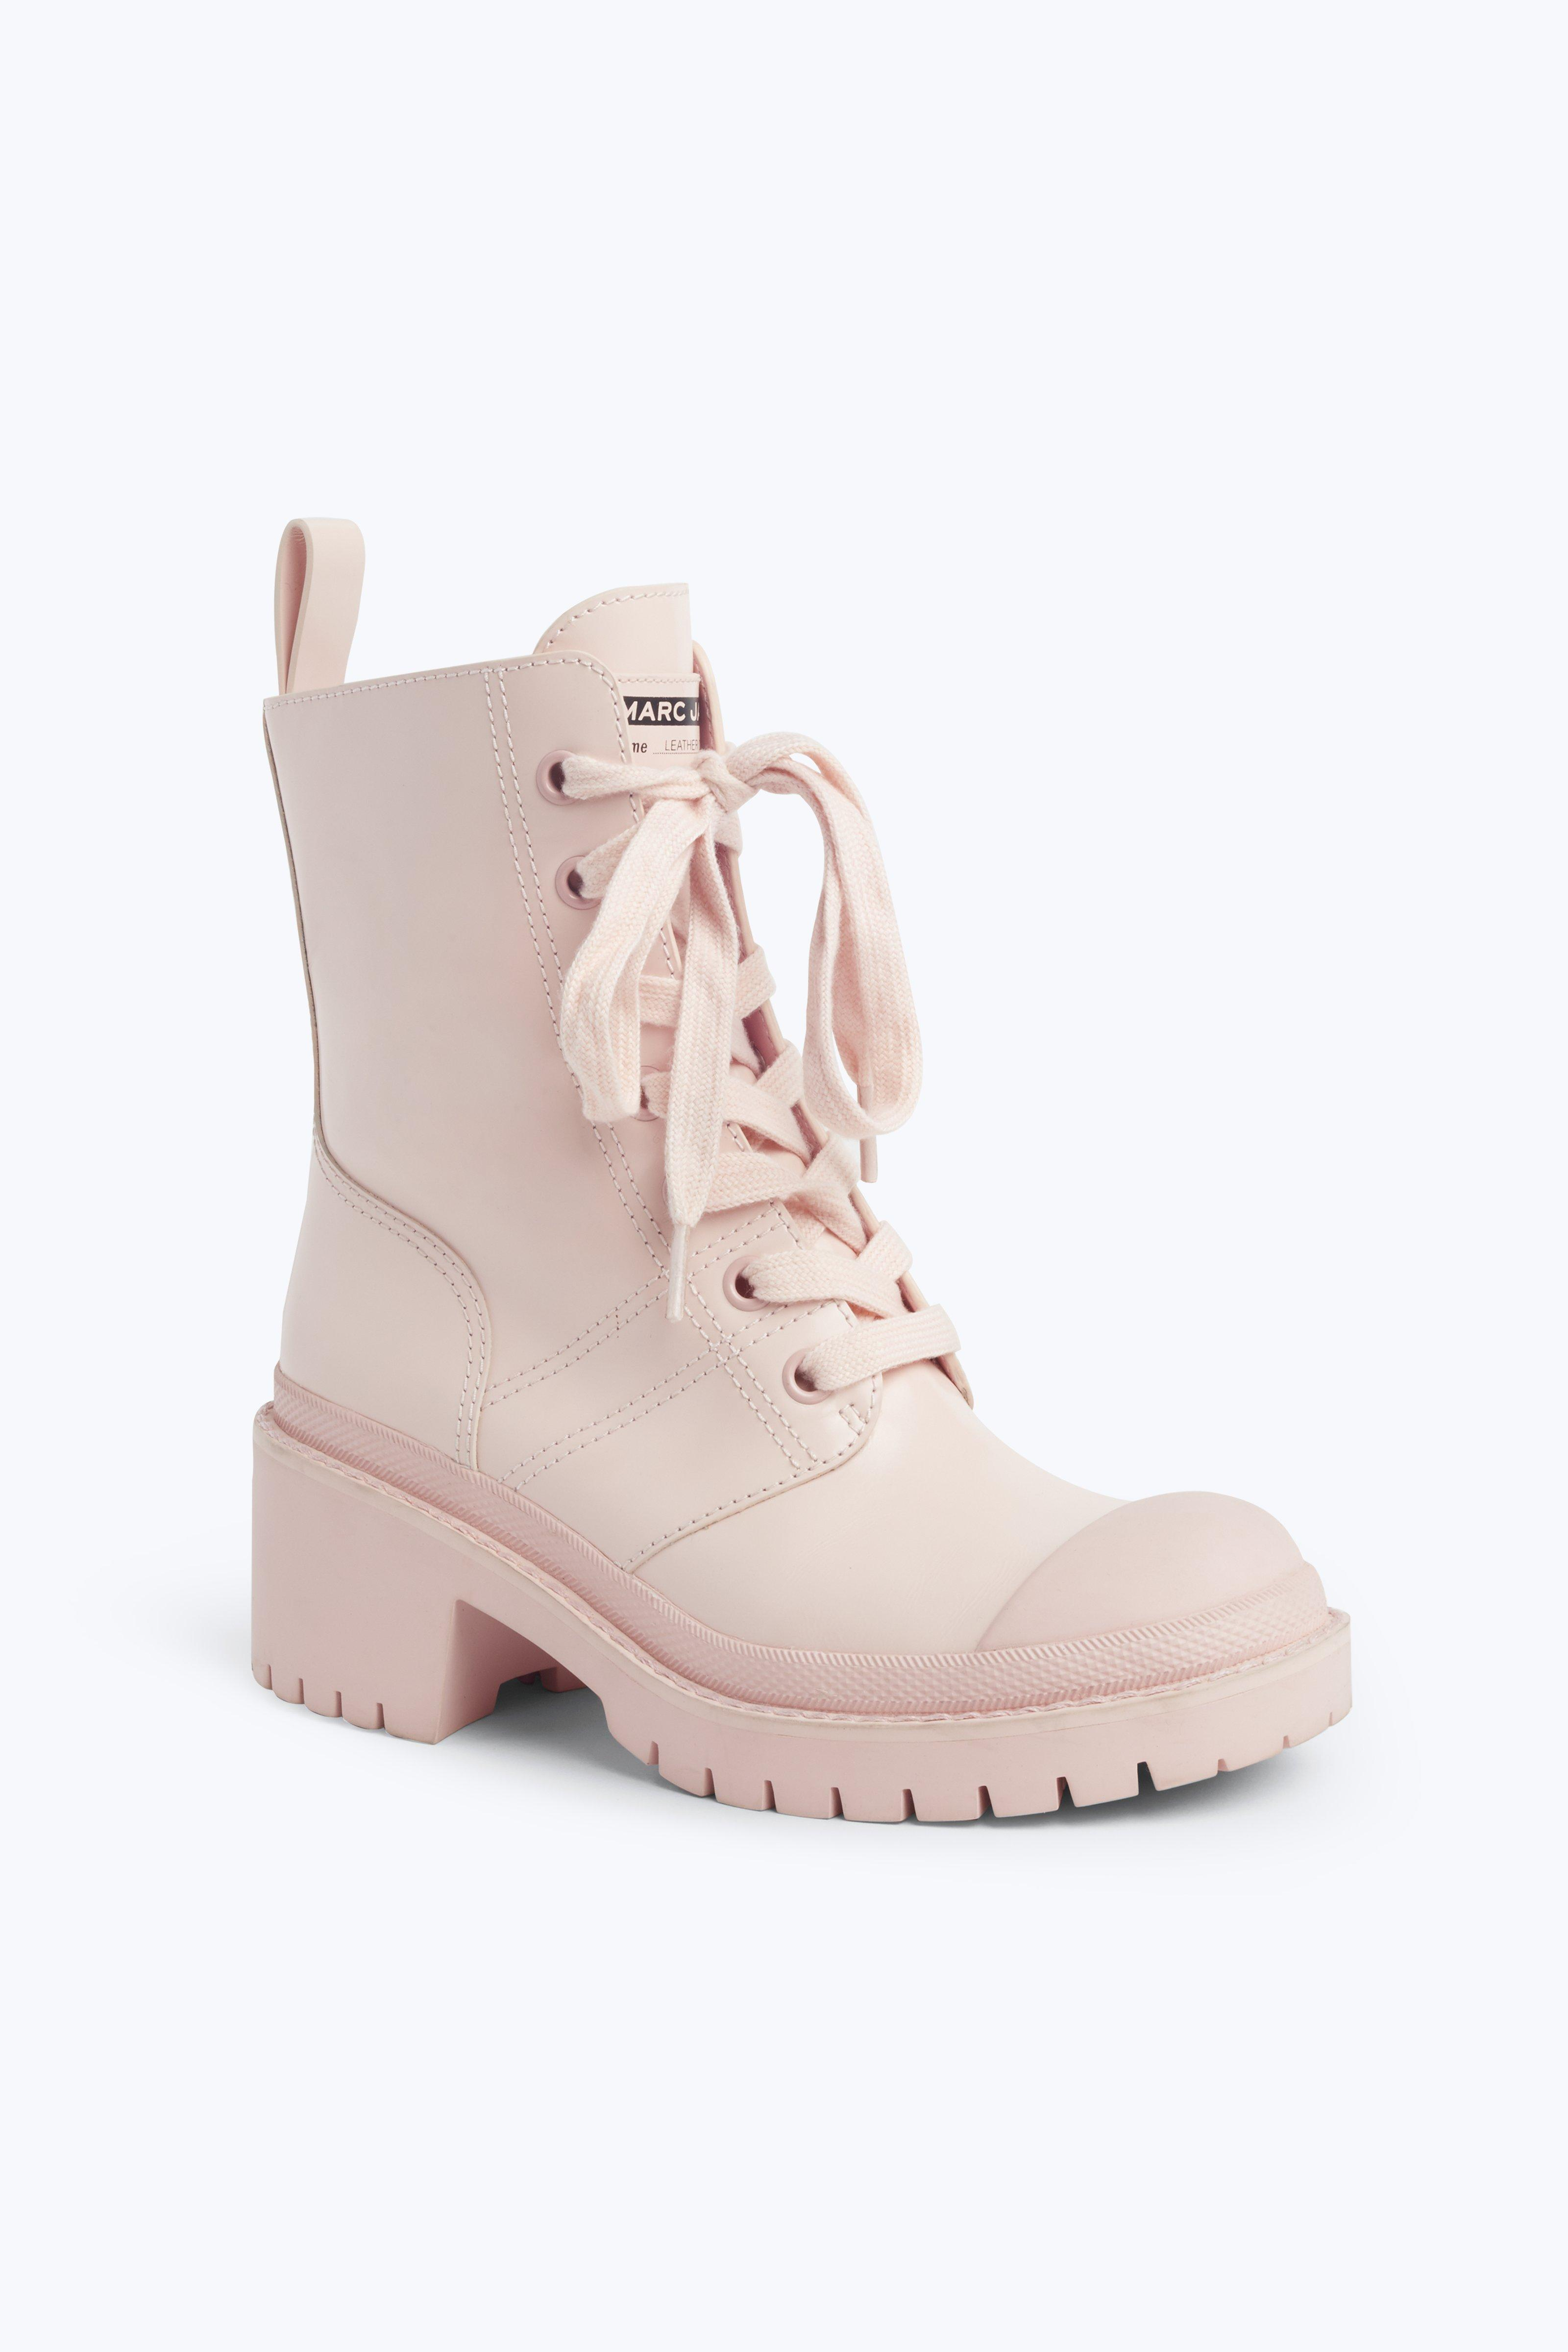 Marc Jacobs Bristol Laced Up Boots ZMlntq4